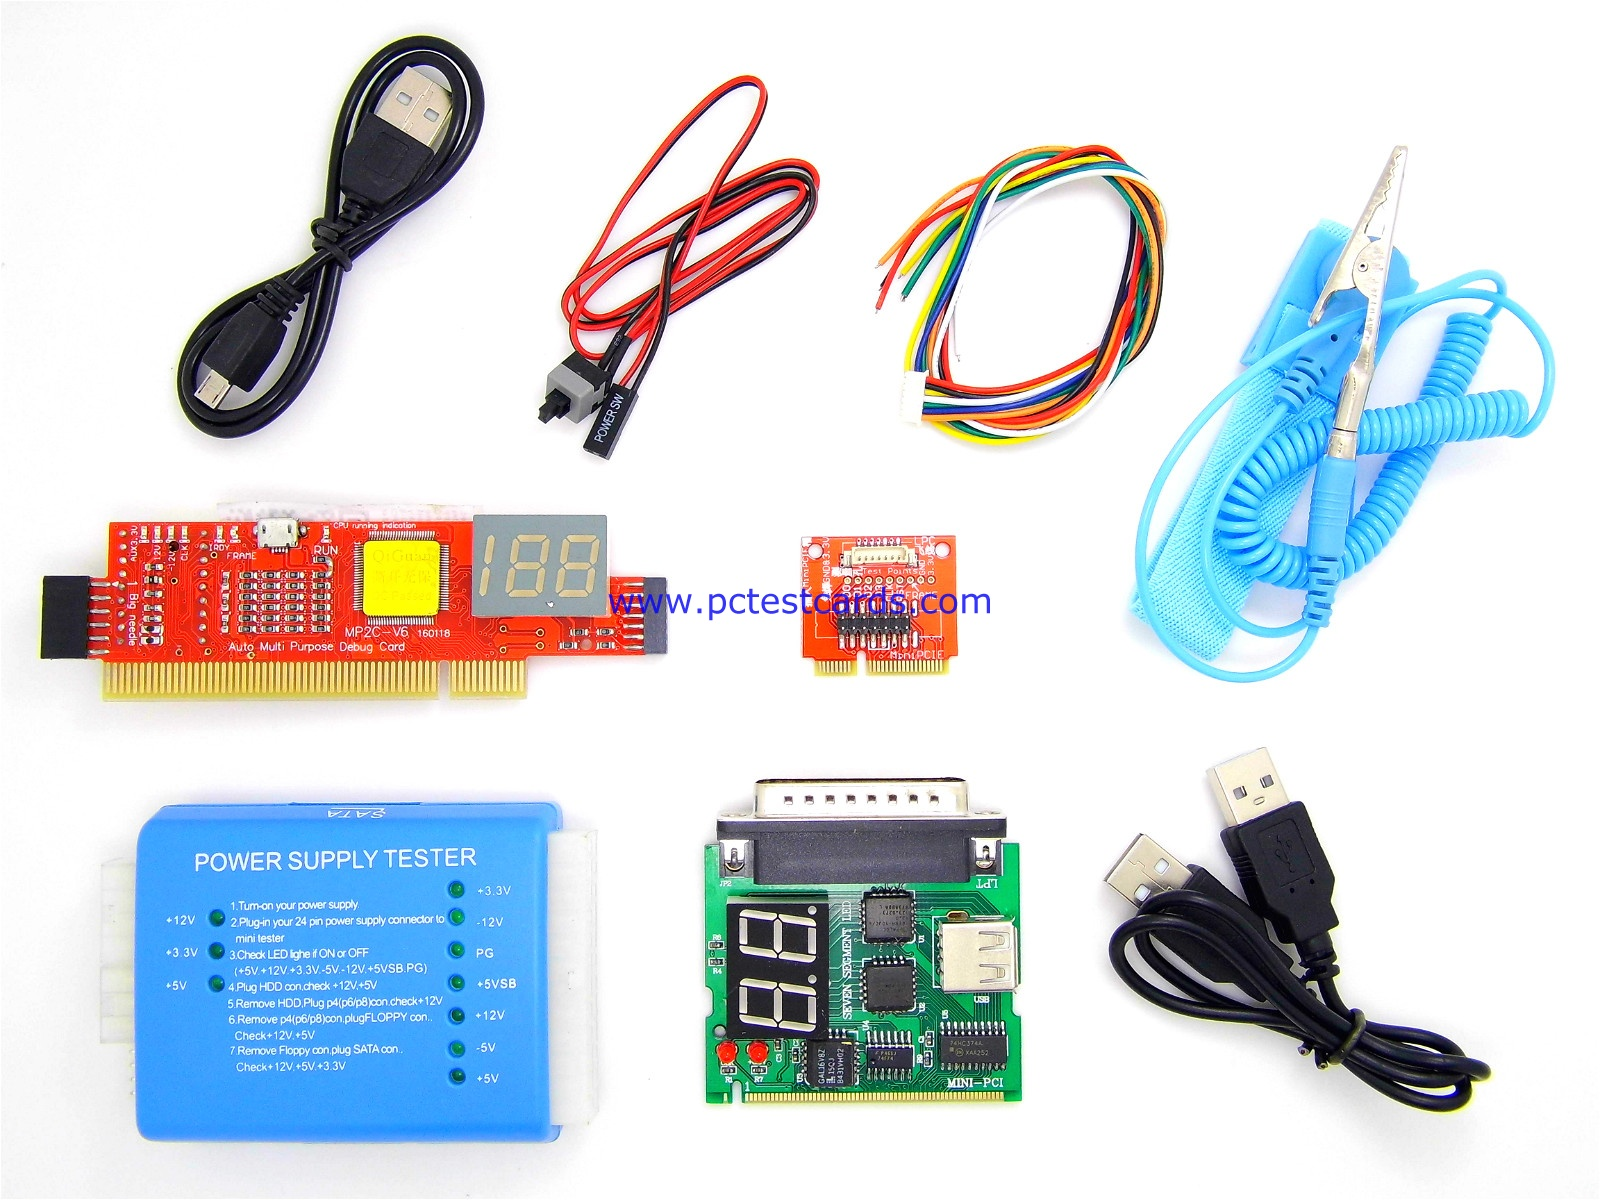 New Complete Essential Pc Laptop Motherboard Power Psu Repair Diagnostic Analyze Post Test Tool Kit Pctestcards Com